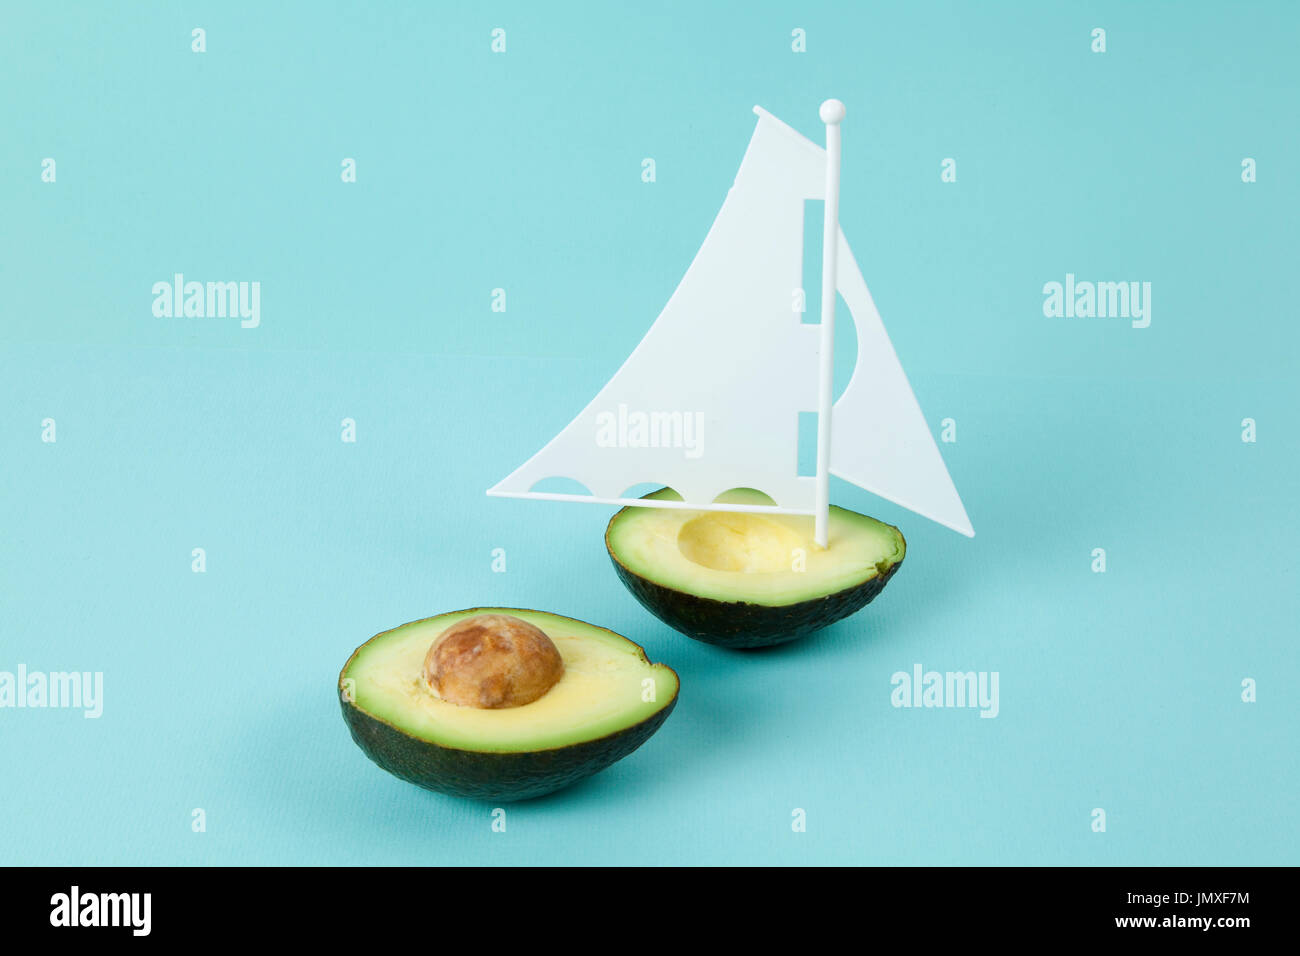 avocado half with white sail on a turquoise background. minimal and quirky color still life photography - Stock Image